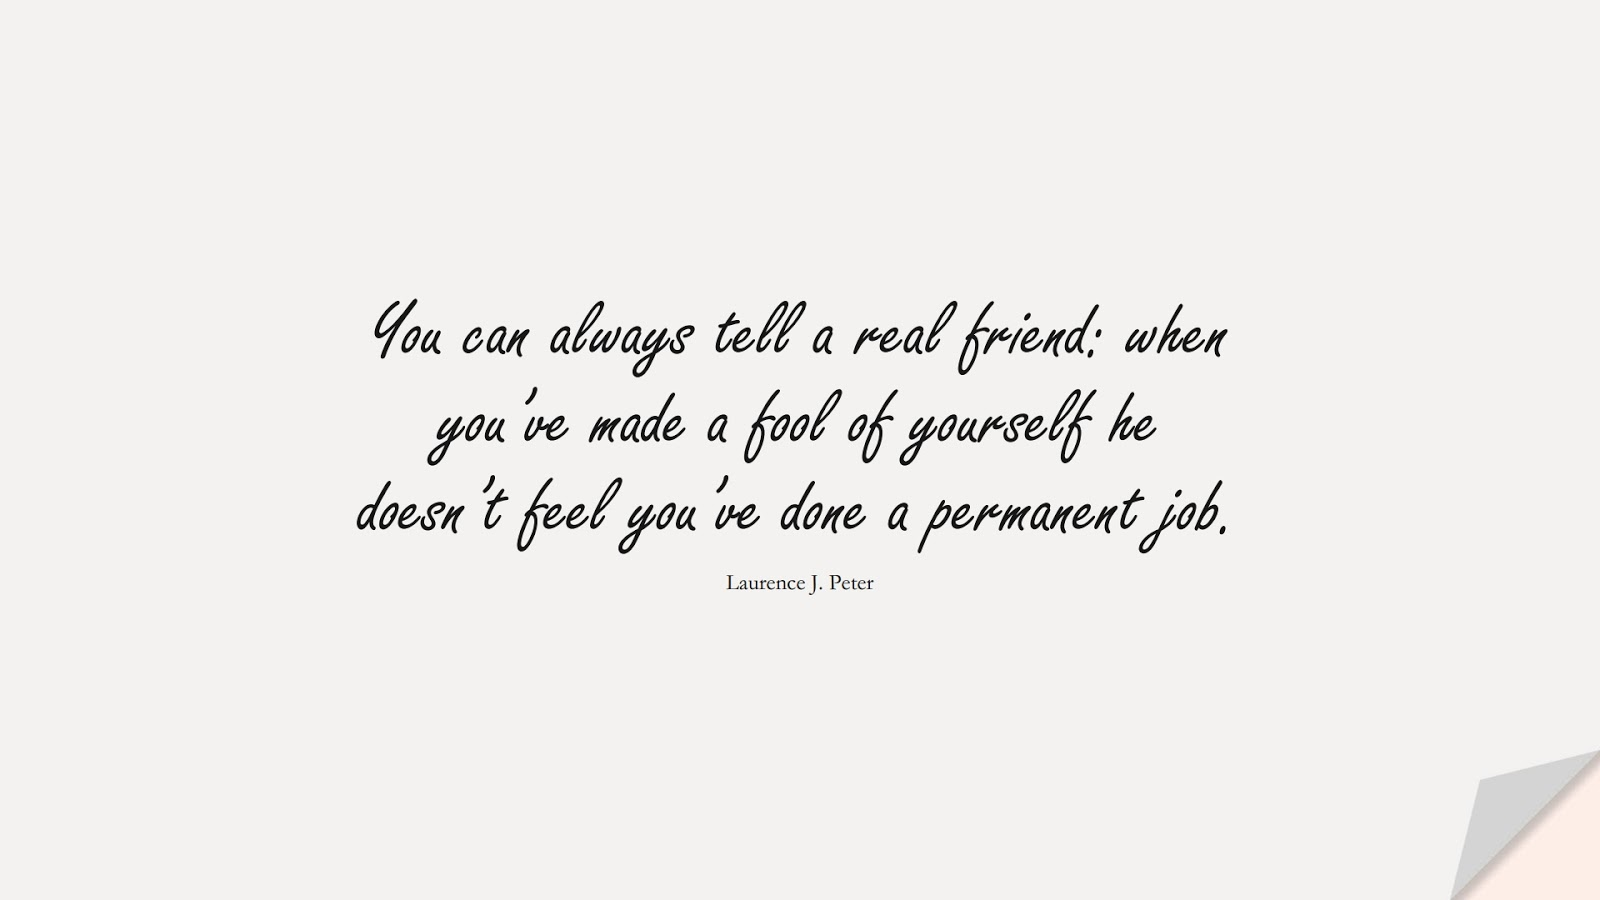 You can always tell a real friend: when you've made a fool of yourself he doesn't feel you've done a permanent job. (Laurence J. Peter);  #FriendshipQuotes